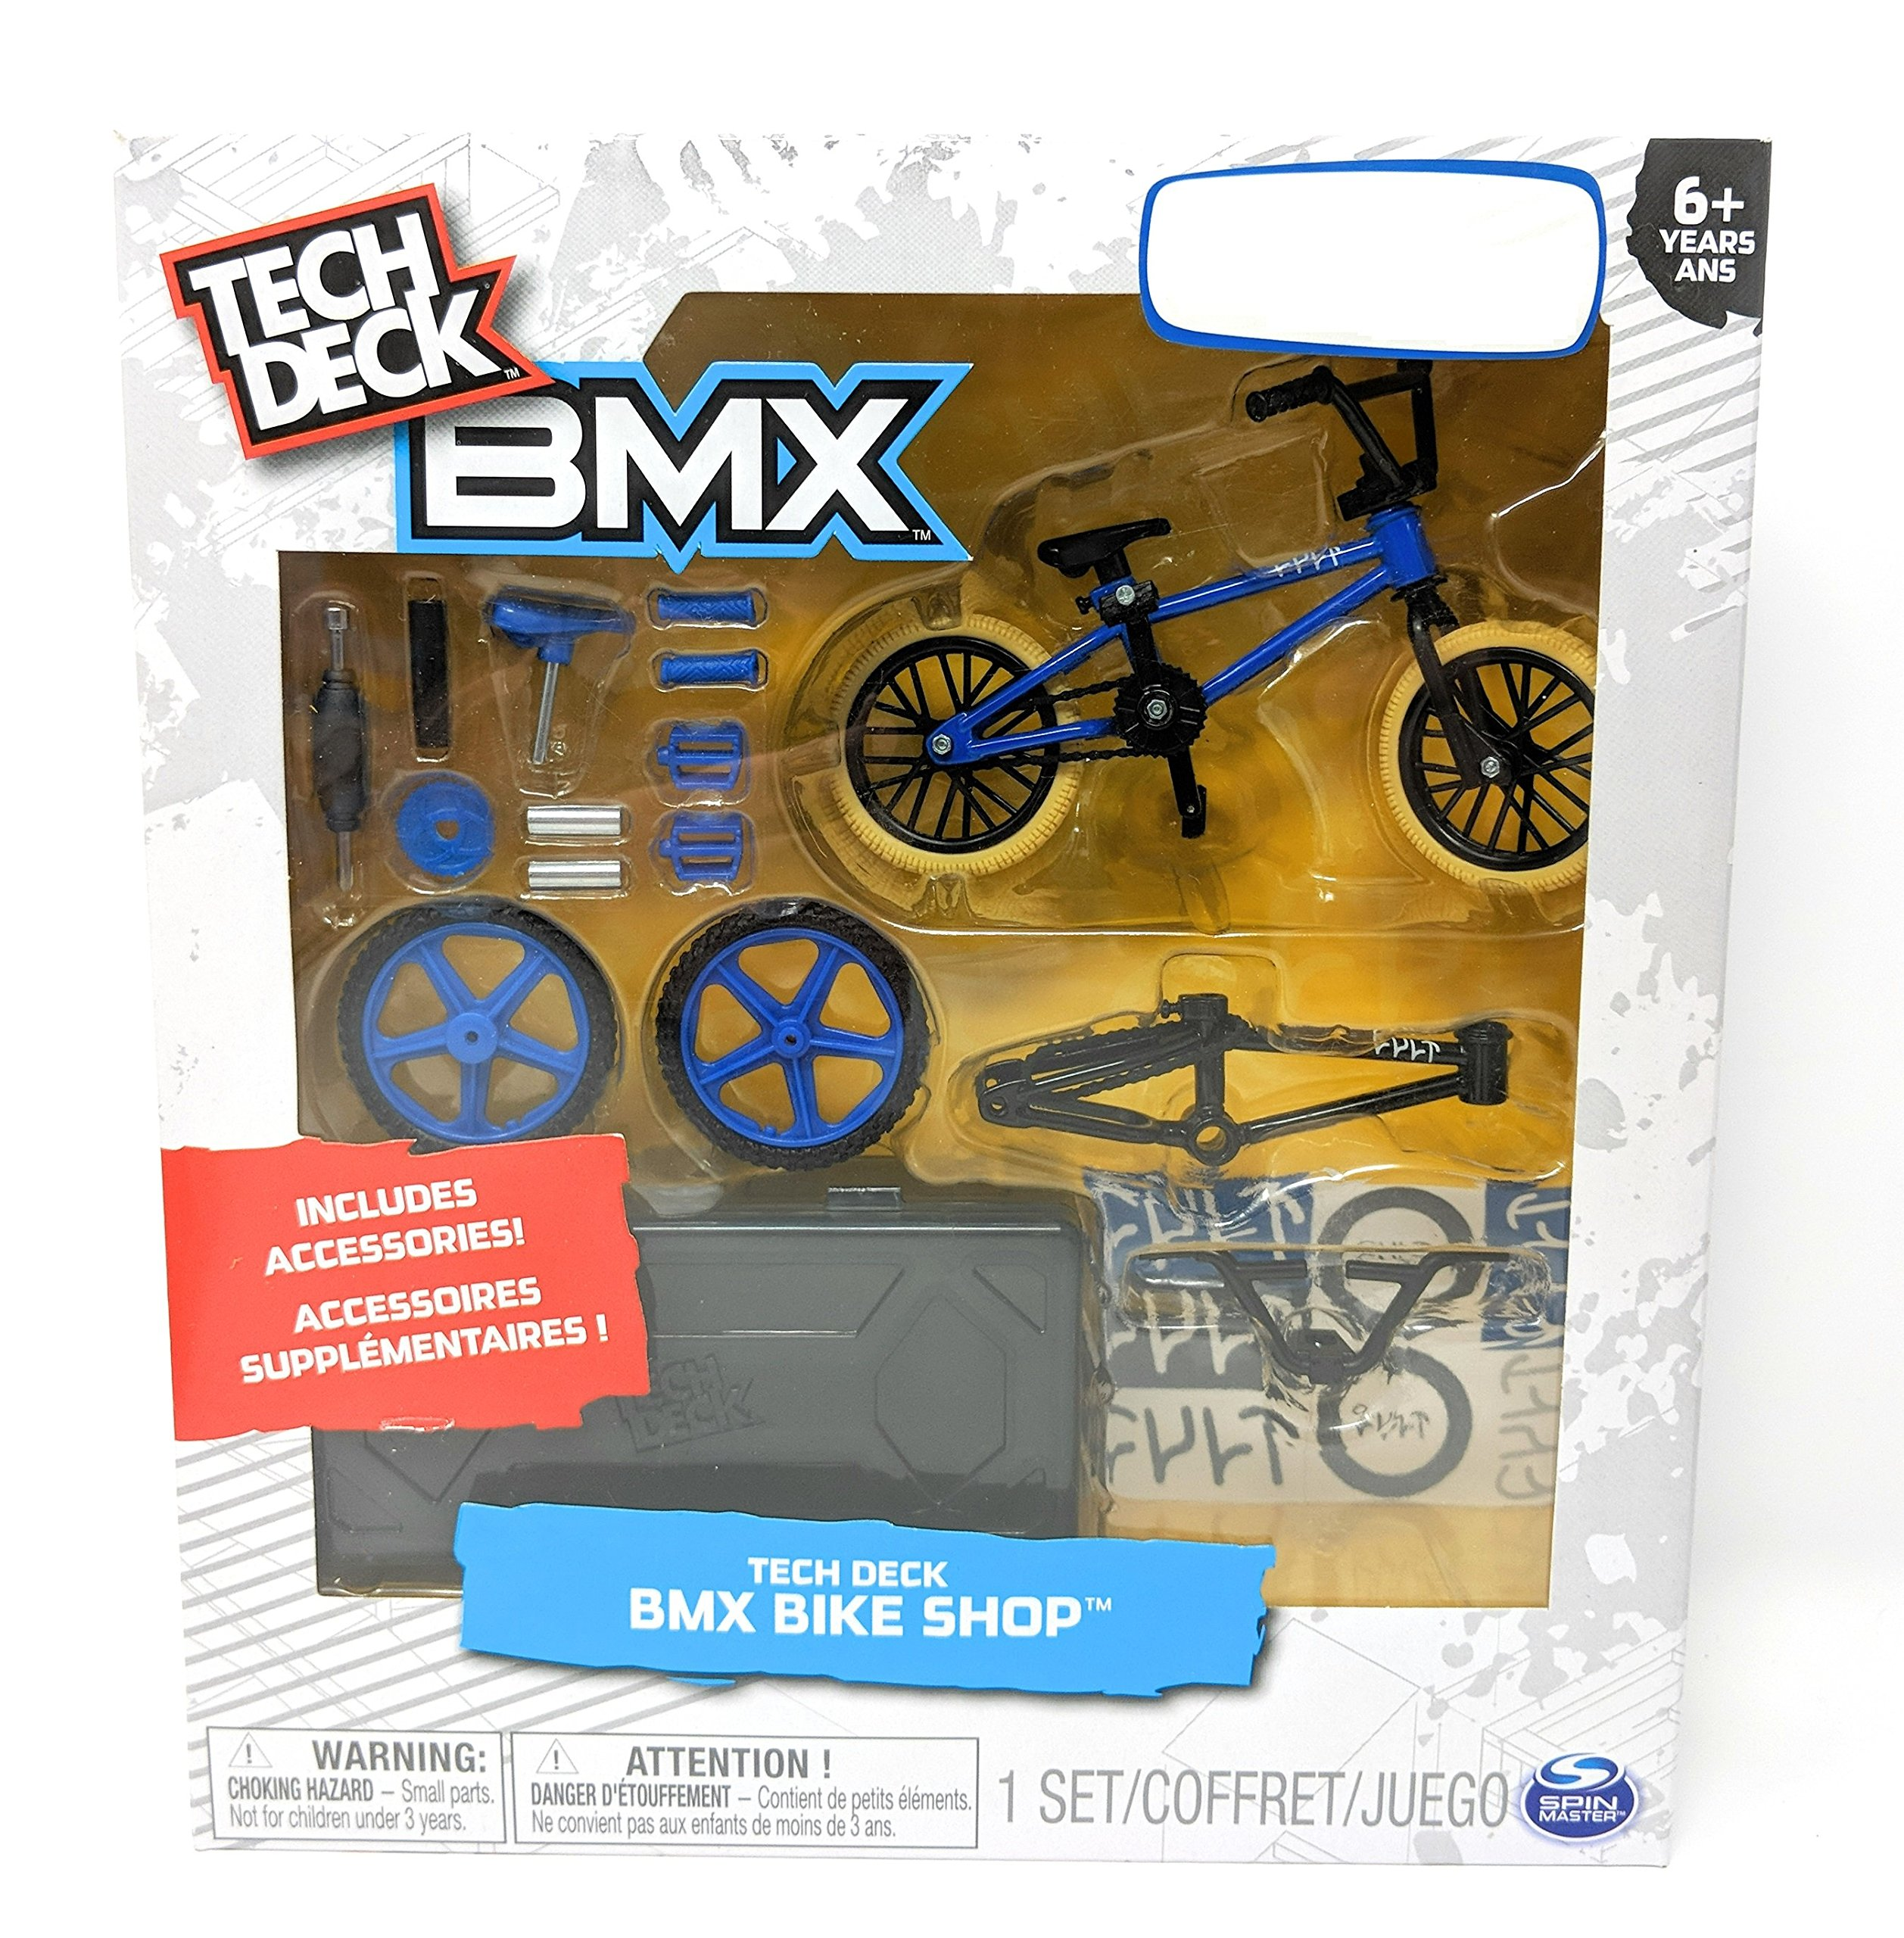 Tech Deck – BMX Bike Shop with Accessories and Storage Container – CULT Bikes – Blue & Black